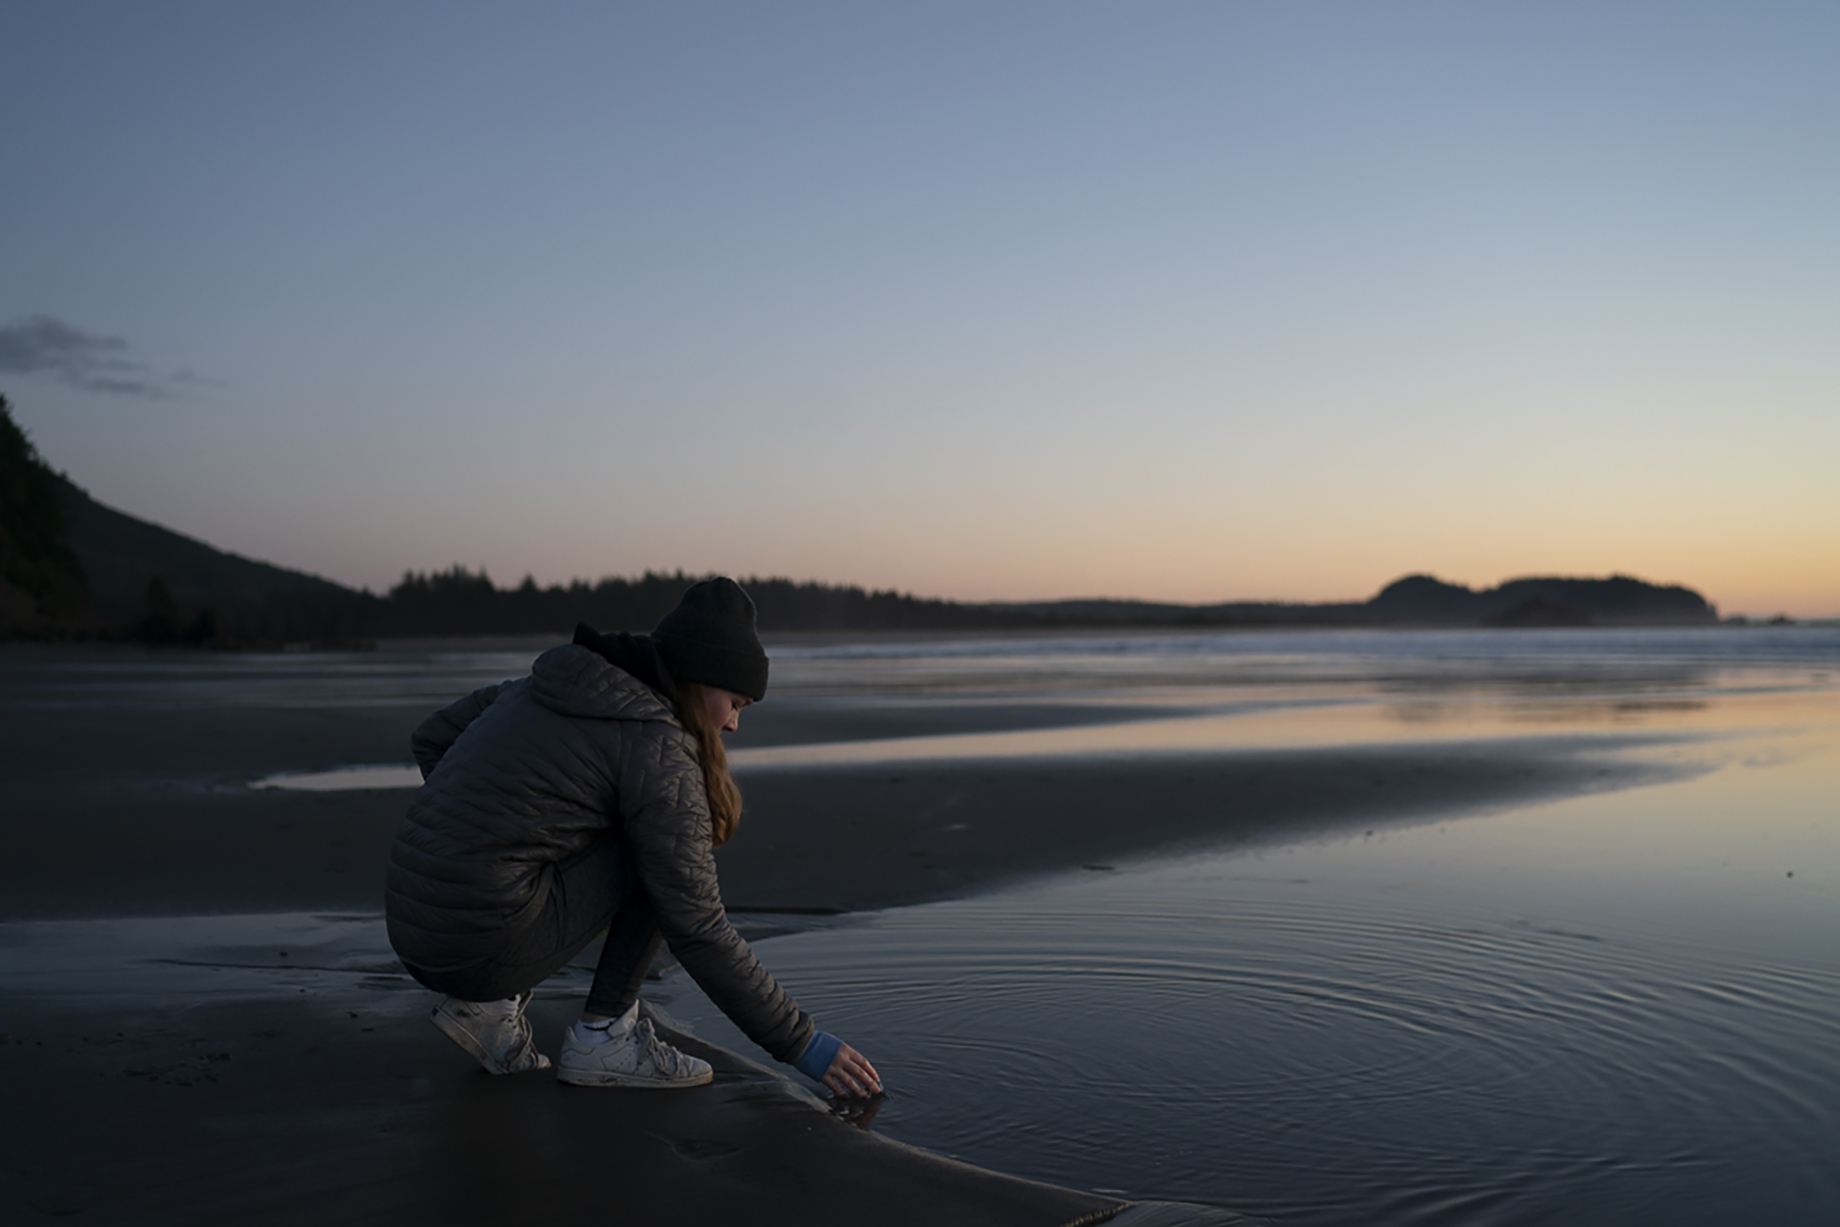 Young woman touching still waters on a cold Washington beach at sunset shot by Motofish for Hest.